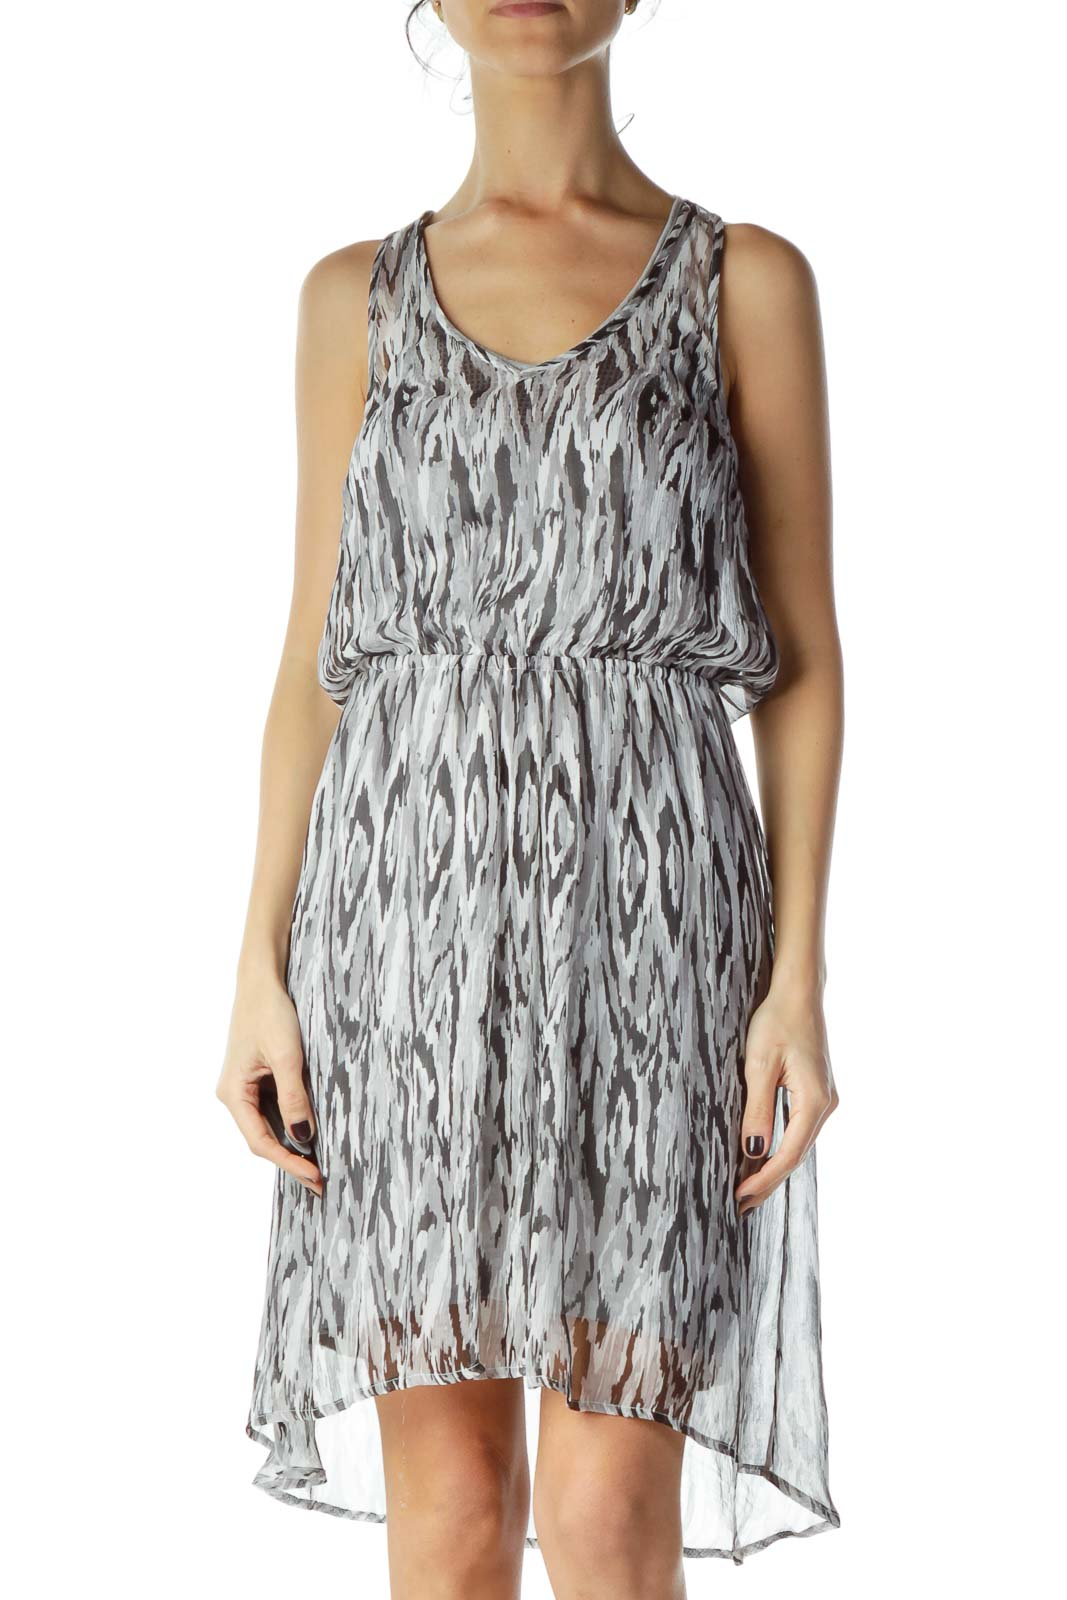 Gray Black Print Sheer Stretchy A-line Dress